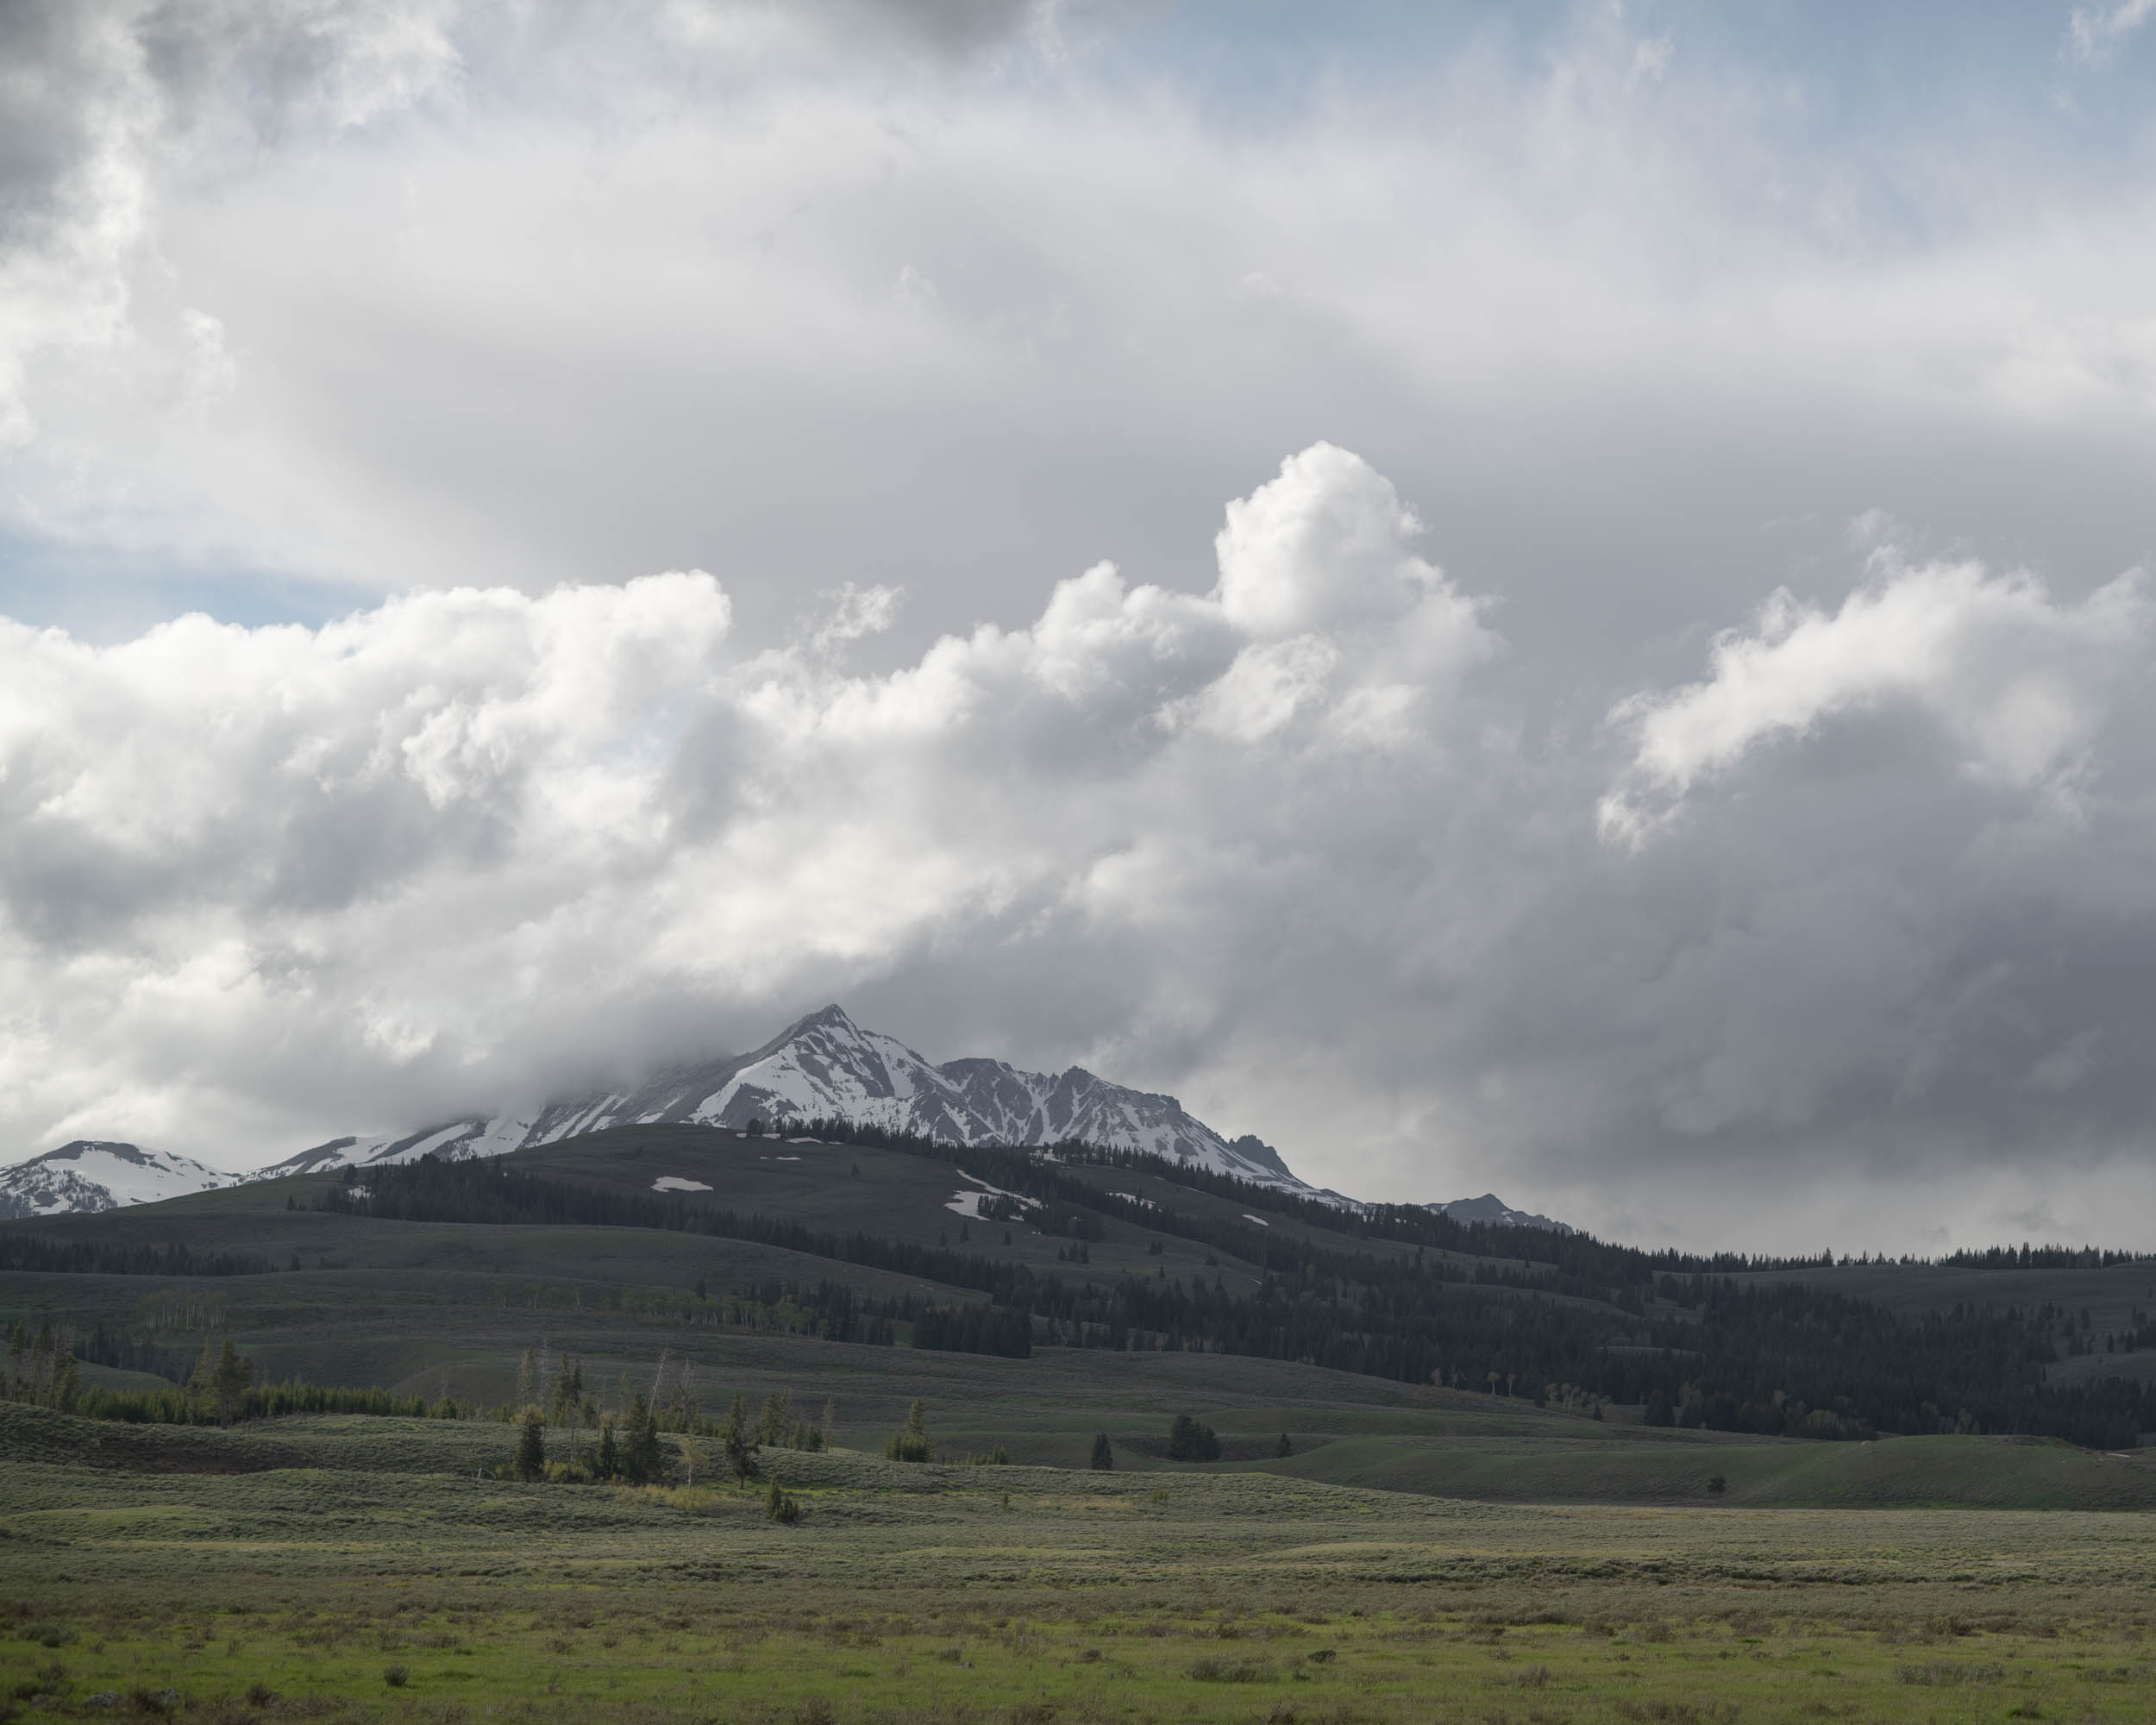 YellowstoneRoadside-3